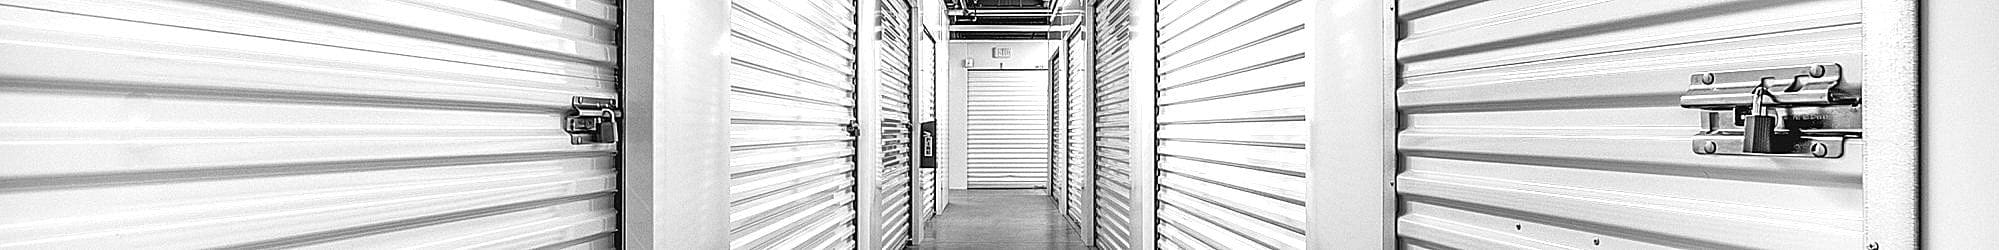 Contact Us at Ace Affordable Storage in Sherman, Texas